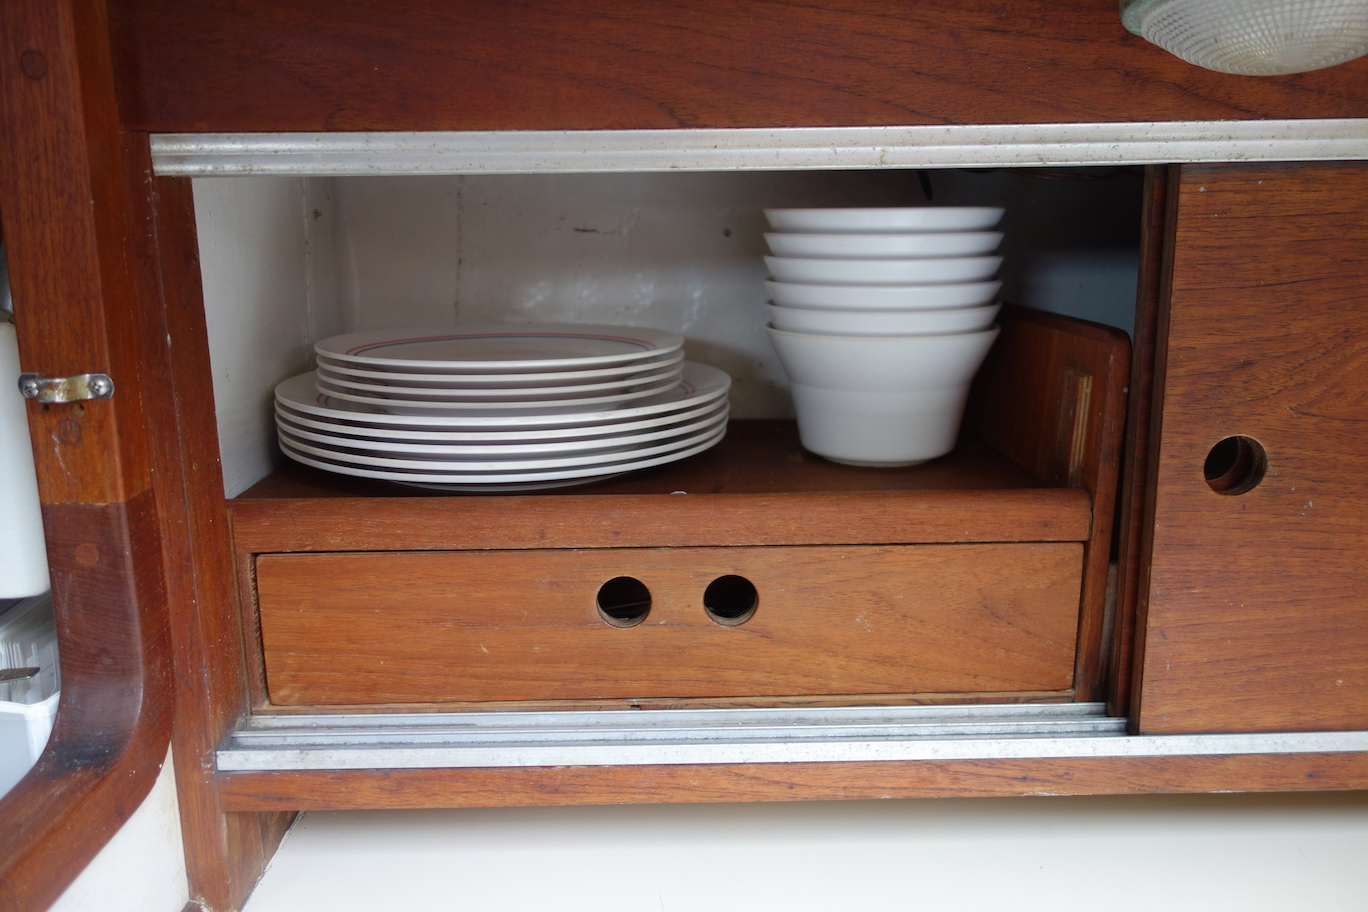 Clever galley storage for plates and cutlery.